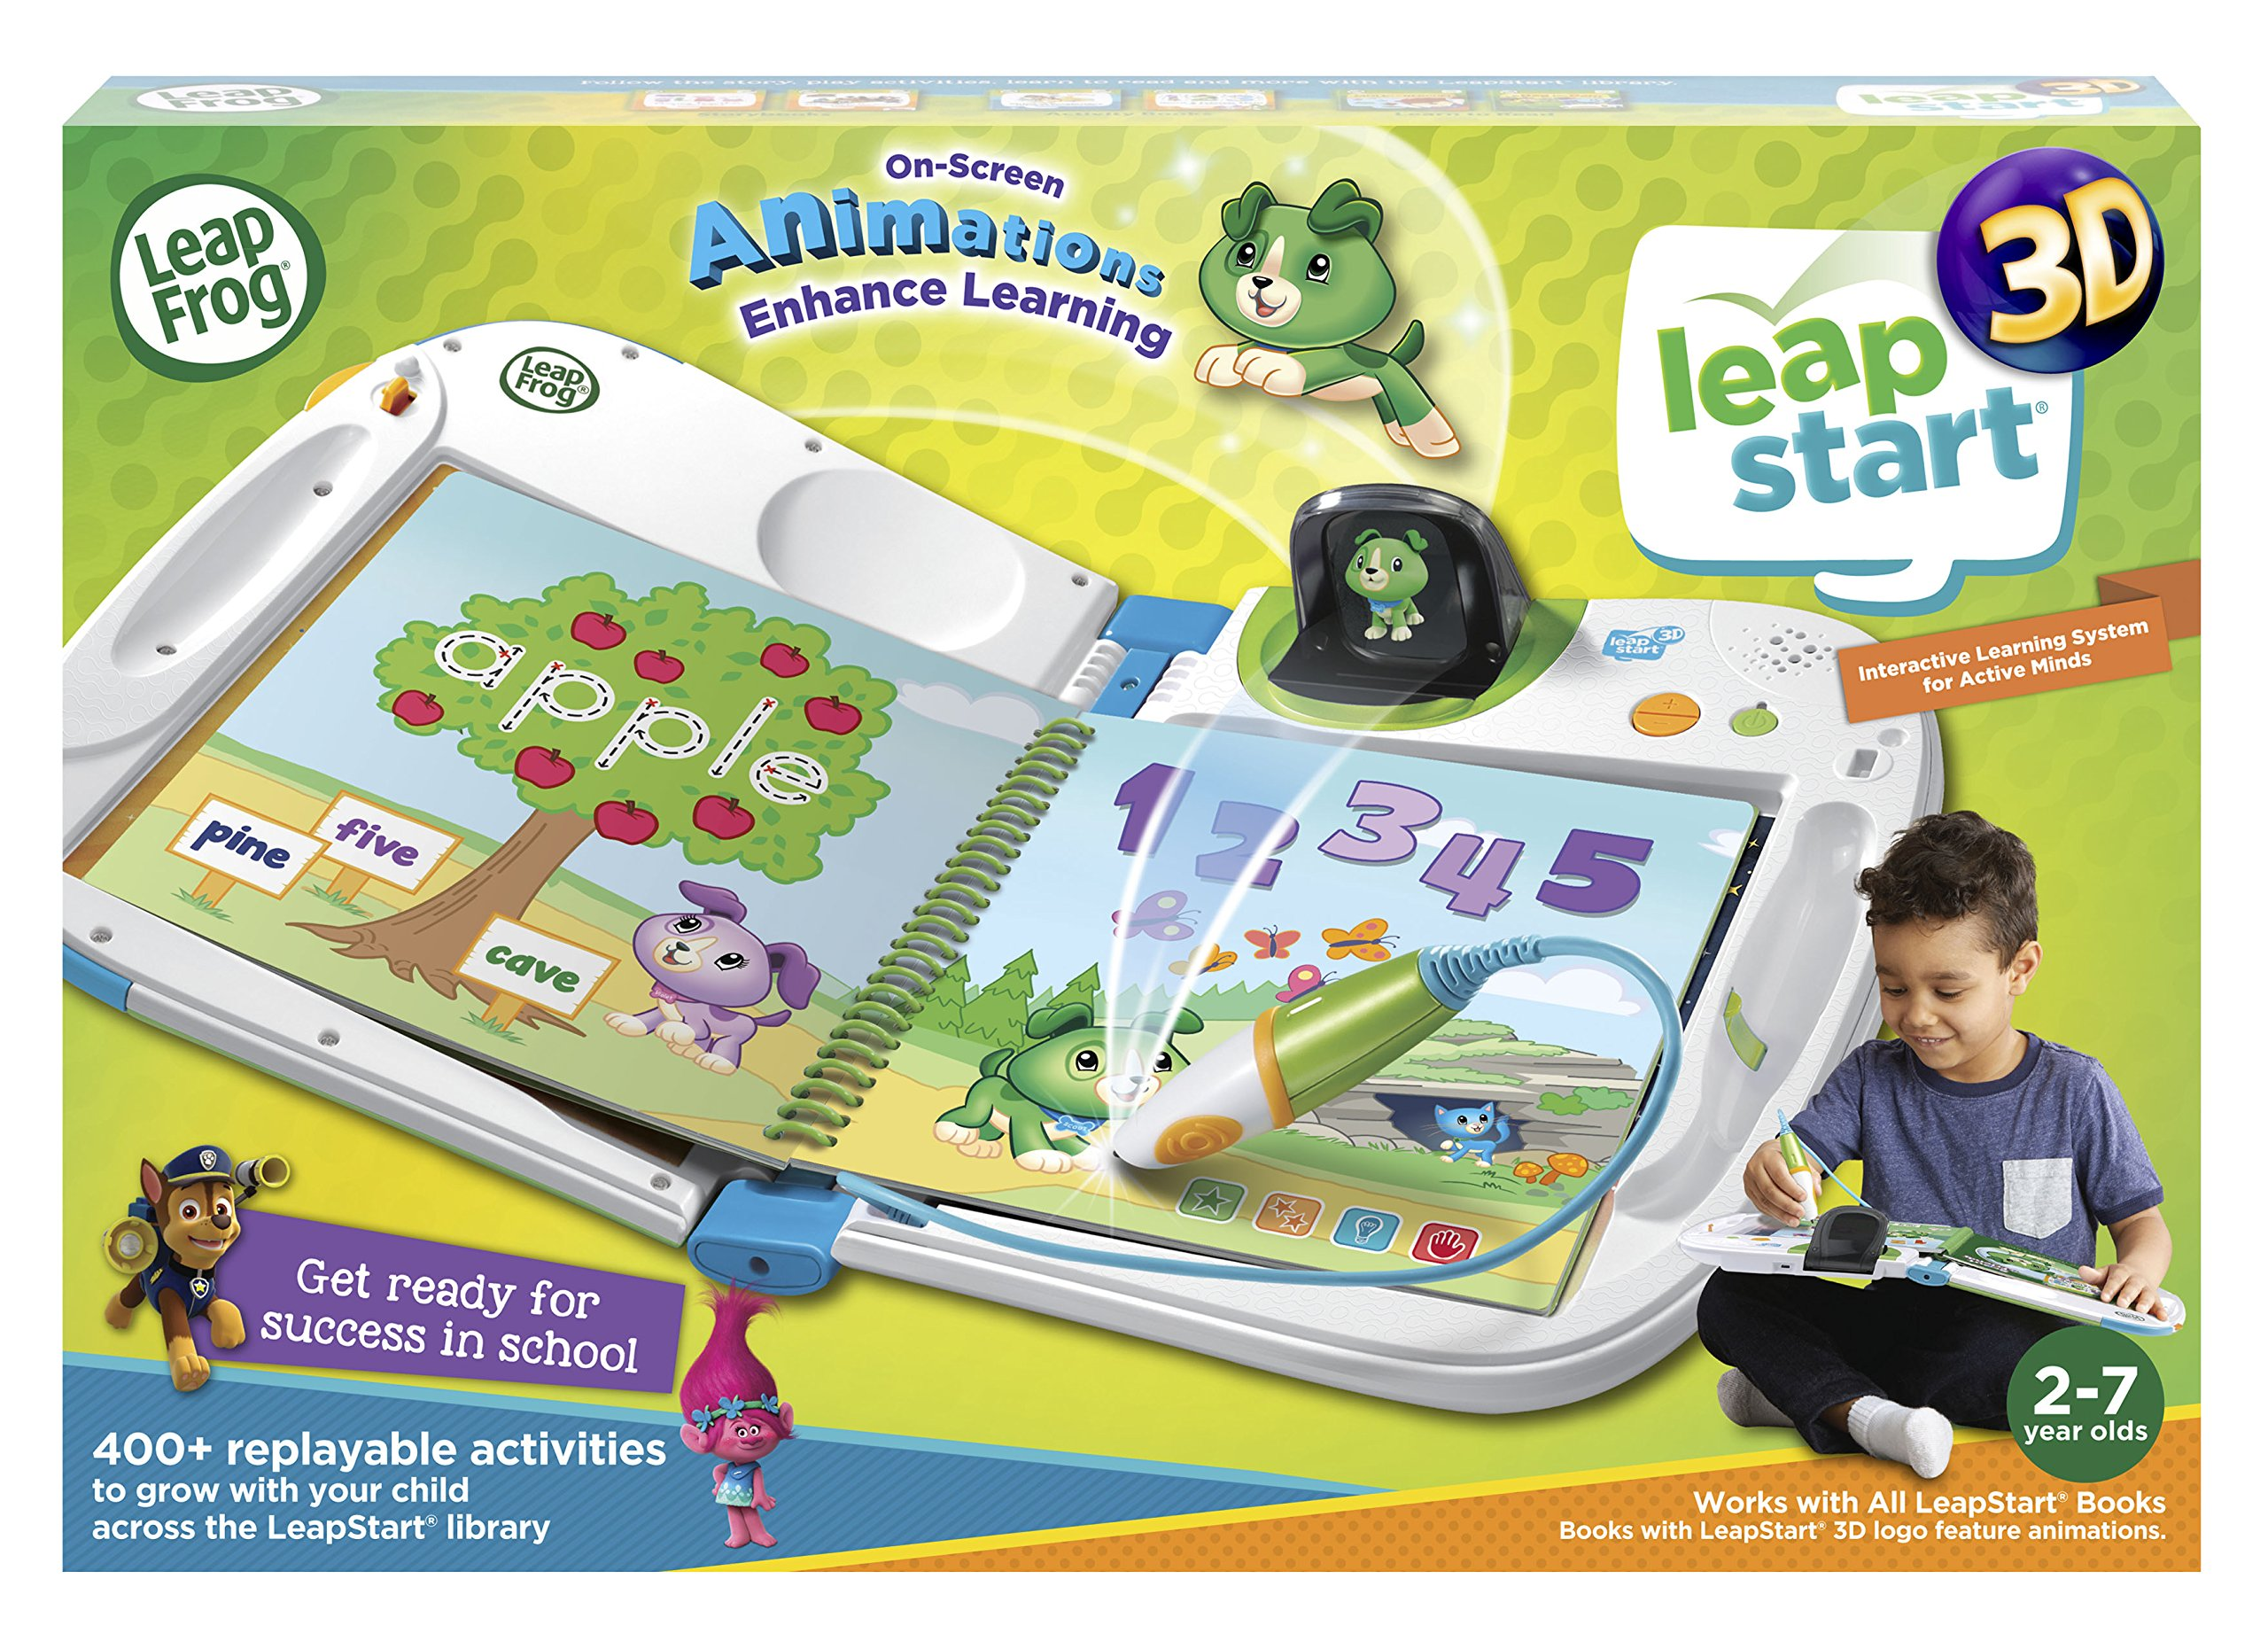 LeapFrog Leapstart 3D Interactive Learning System, Green by LeapFrog (Image #6)